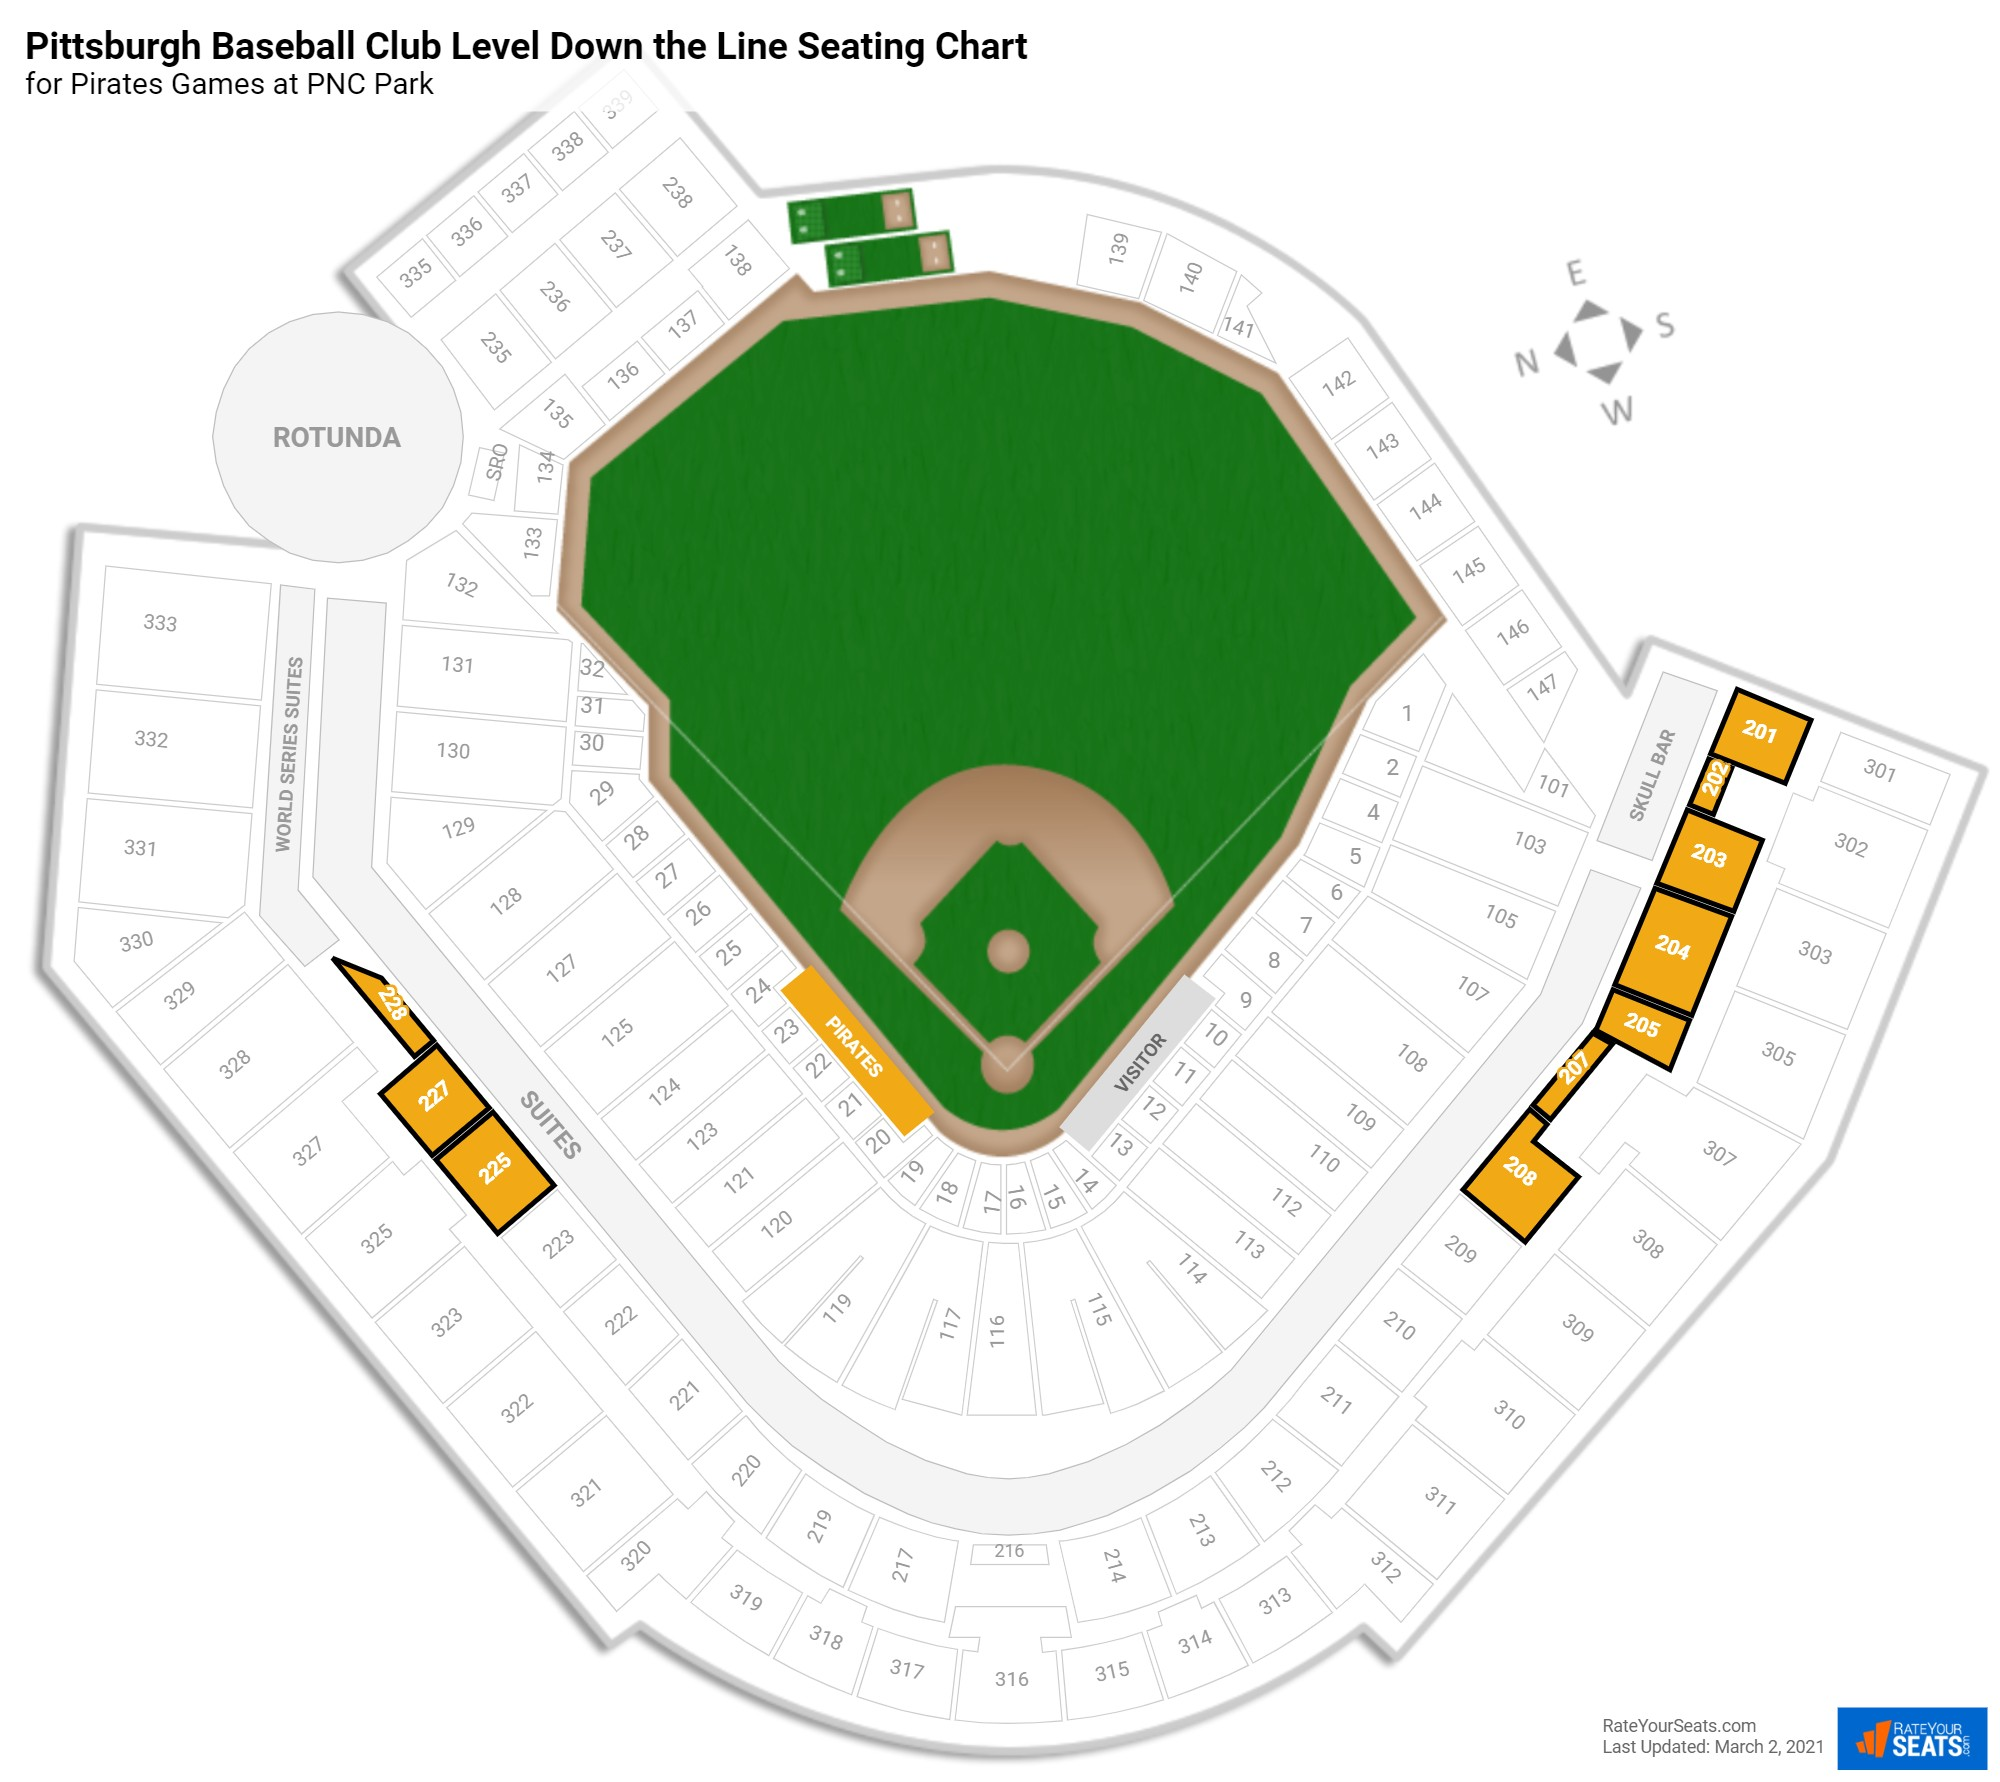 PNC Park PBC Level Down the Line seating chart